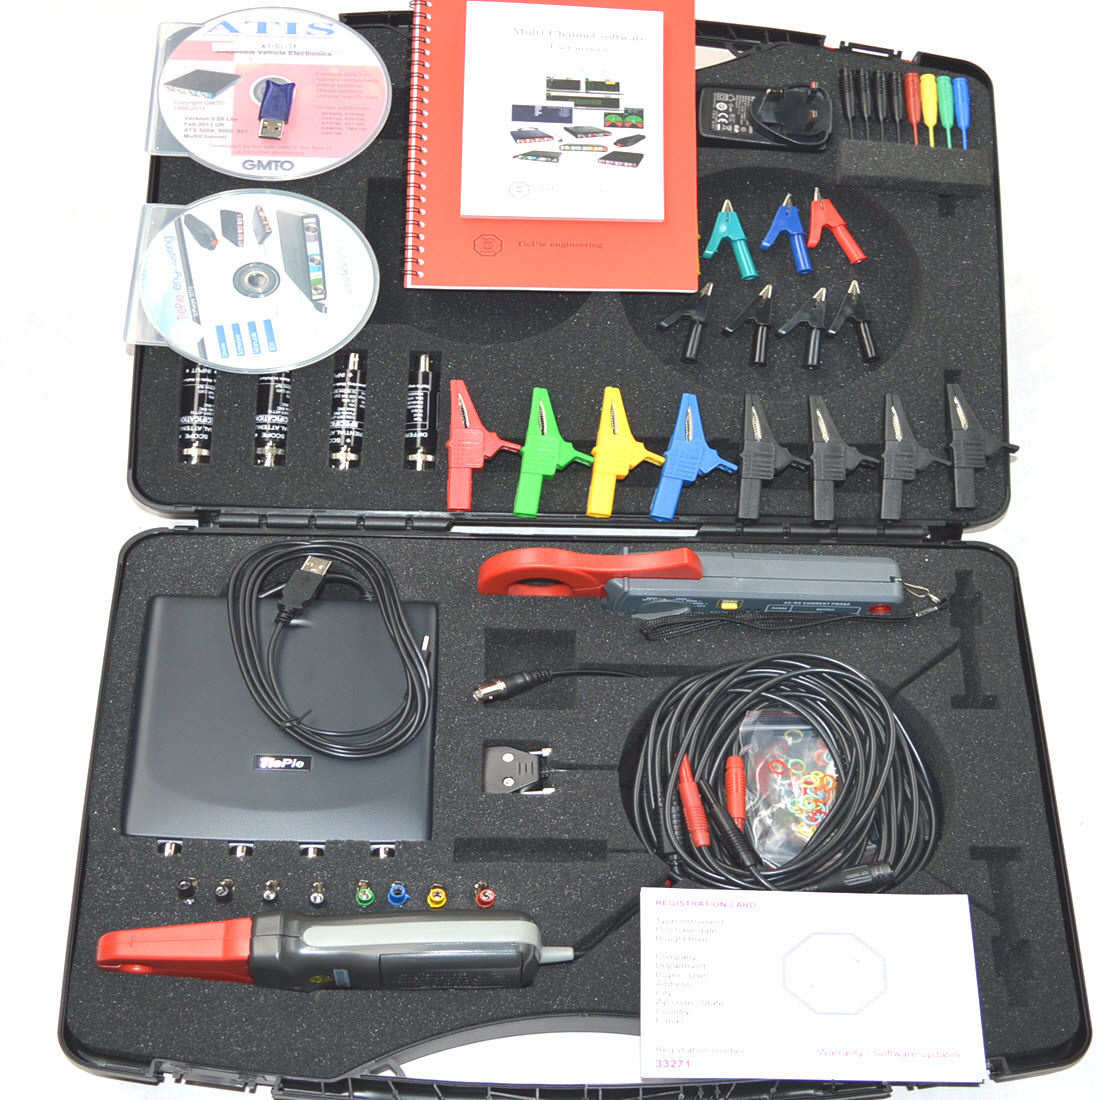 Gmto Tiepie Hs6 Diff 4 Channel Oscilloscope Set B For Sale Laptop Multimeter Tests Checking Voltage And Short Circuits